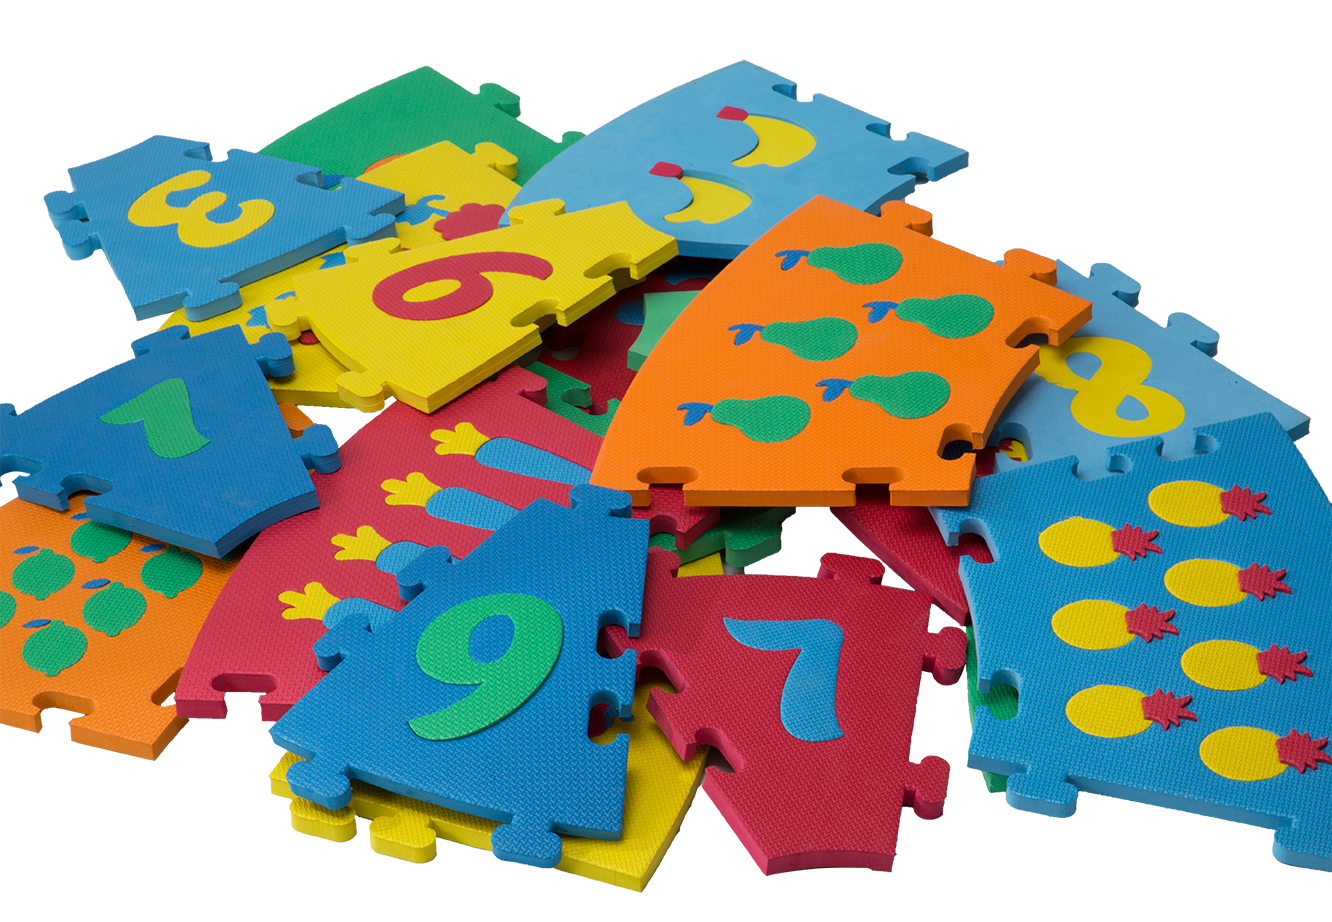 toy for area ideal foam puzzle safe create int use buy gift online a sale puzzles build angels play south multi games xlarge toys mats tiles mat colorful